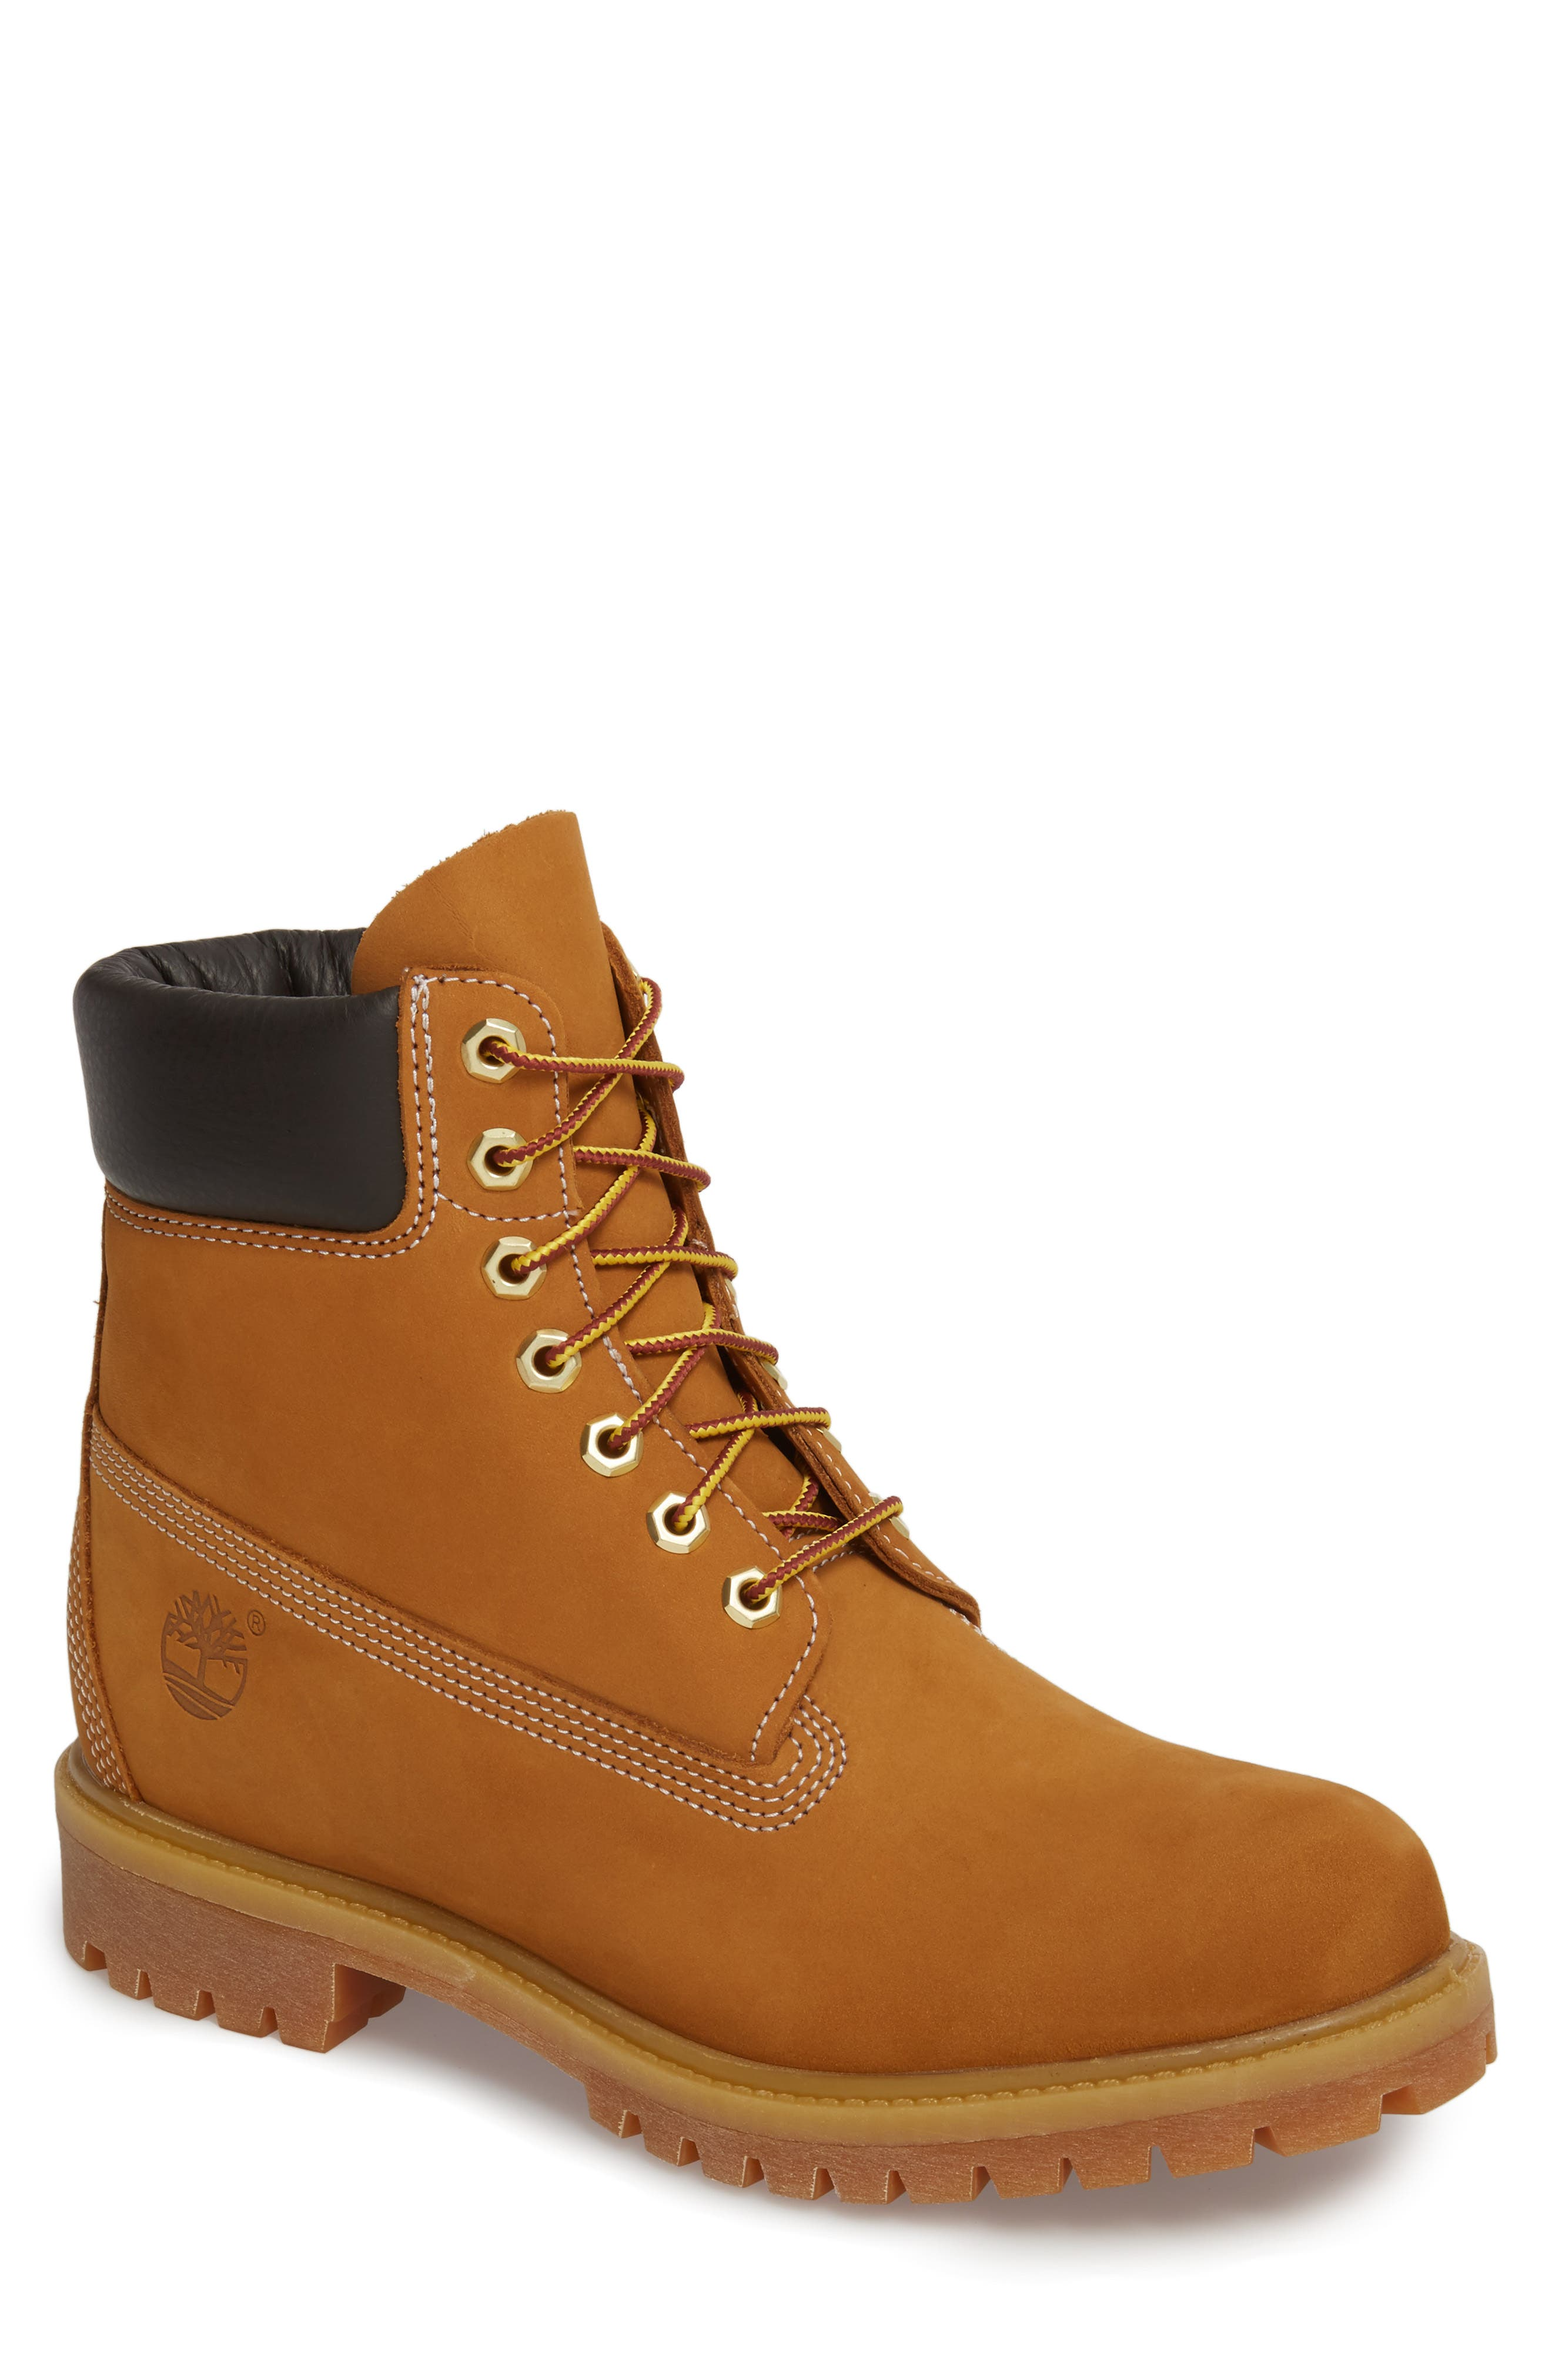 Six Inch Classic Waterproof Boots Series - Premium Waterproof Boot, Main, color, WHEAT